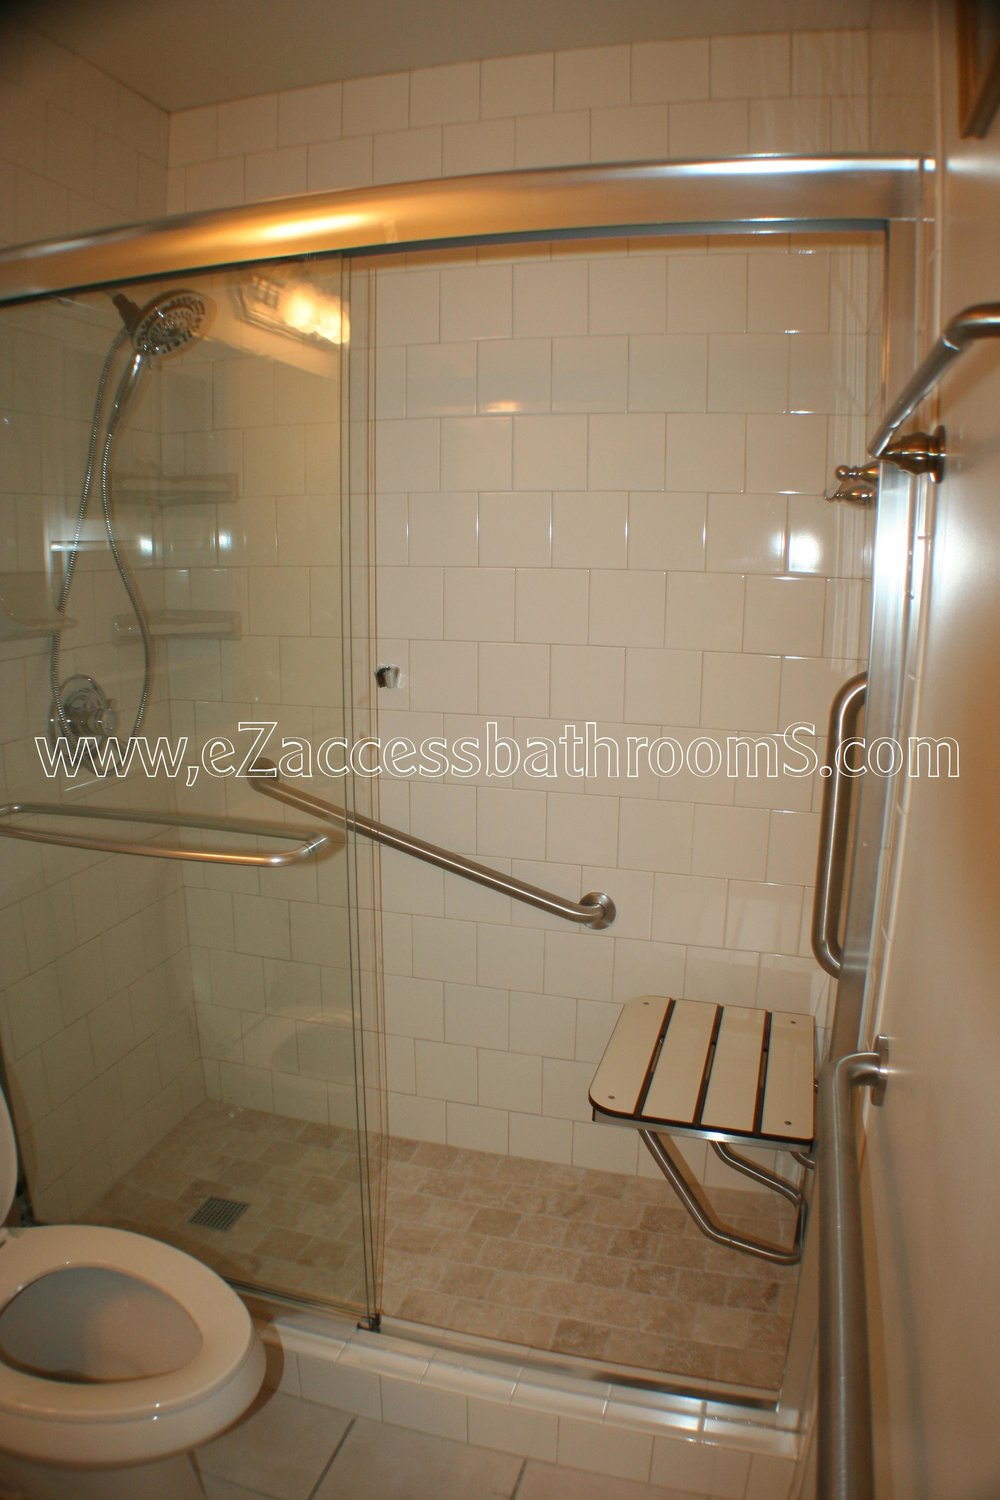 TUBTOSHOWERS CONVERSIONS EZACCESSBATHROOMS.COM 8322028453 CERVNATES 059.JPG